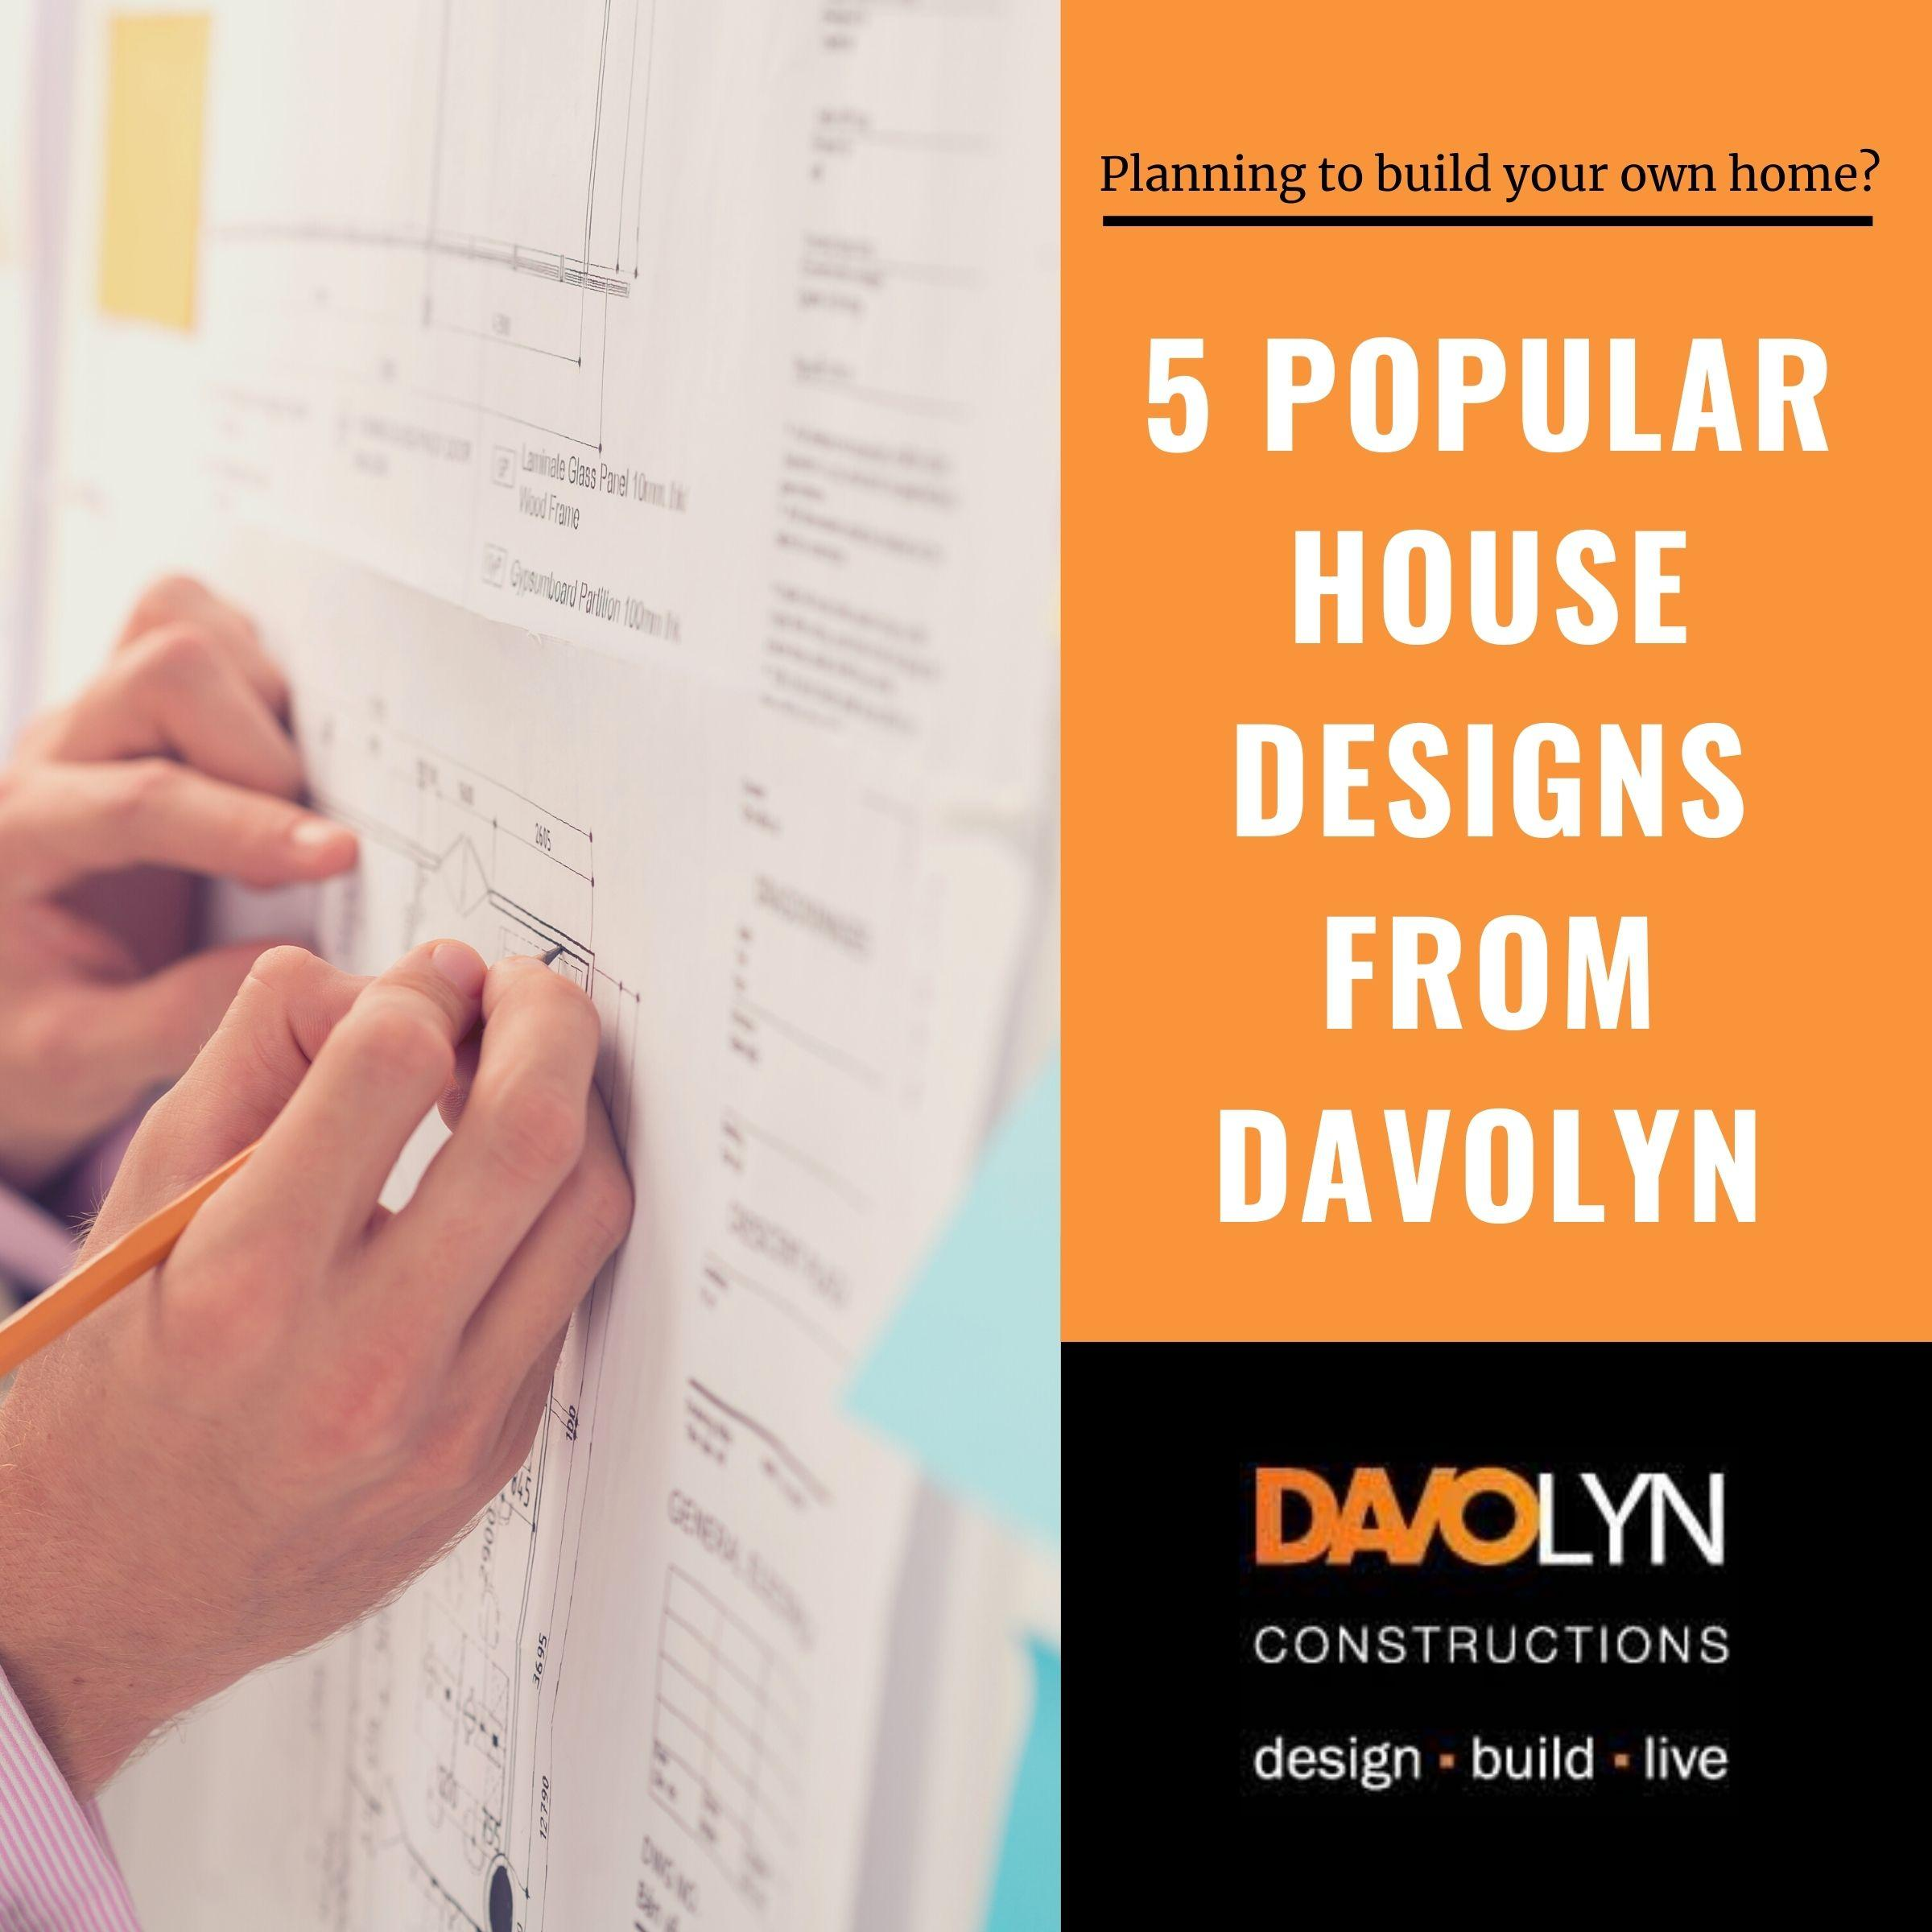 5 Popular House Designs from Davolyn